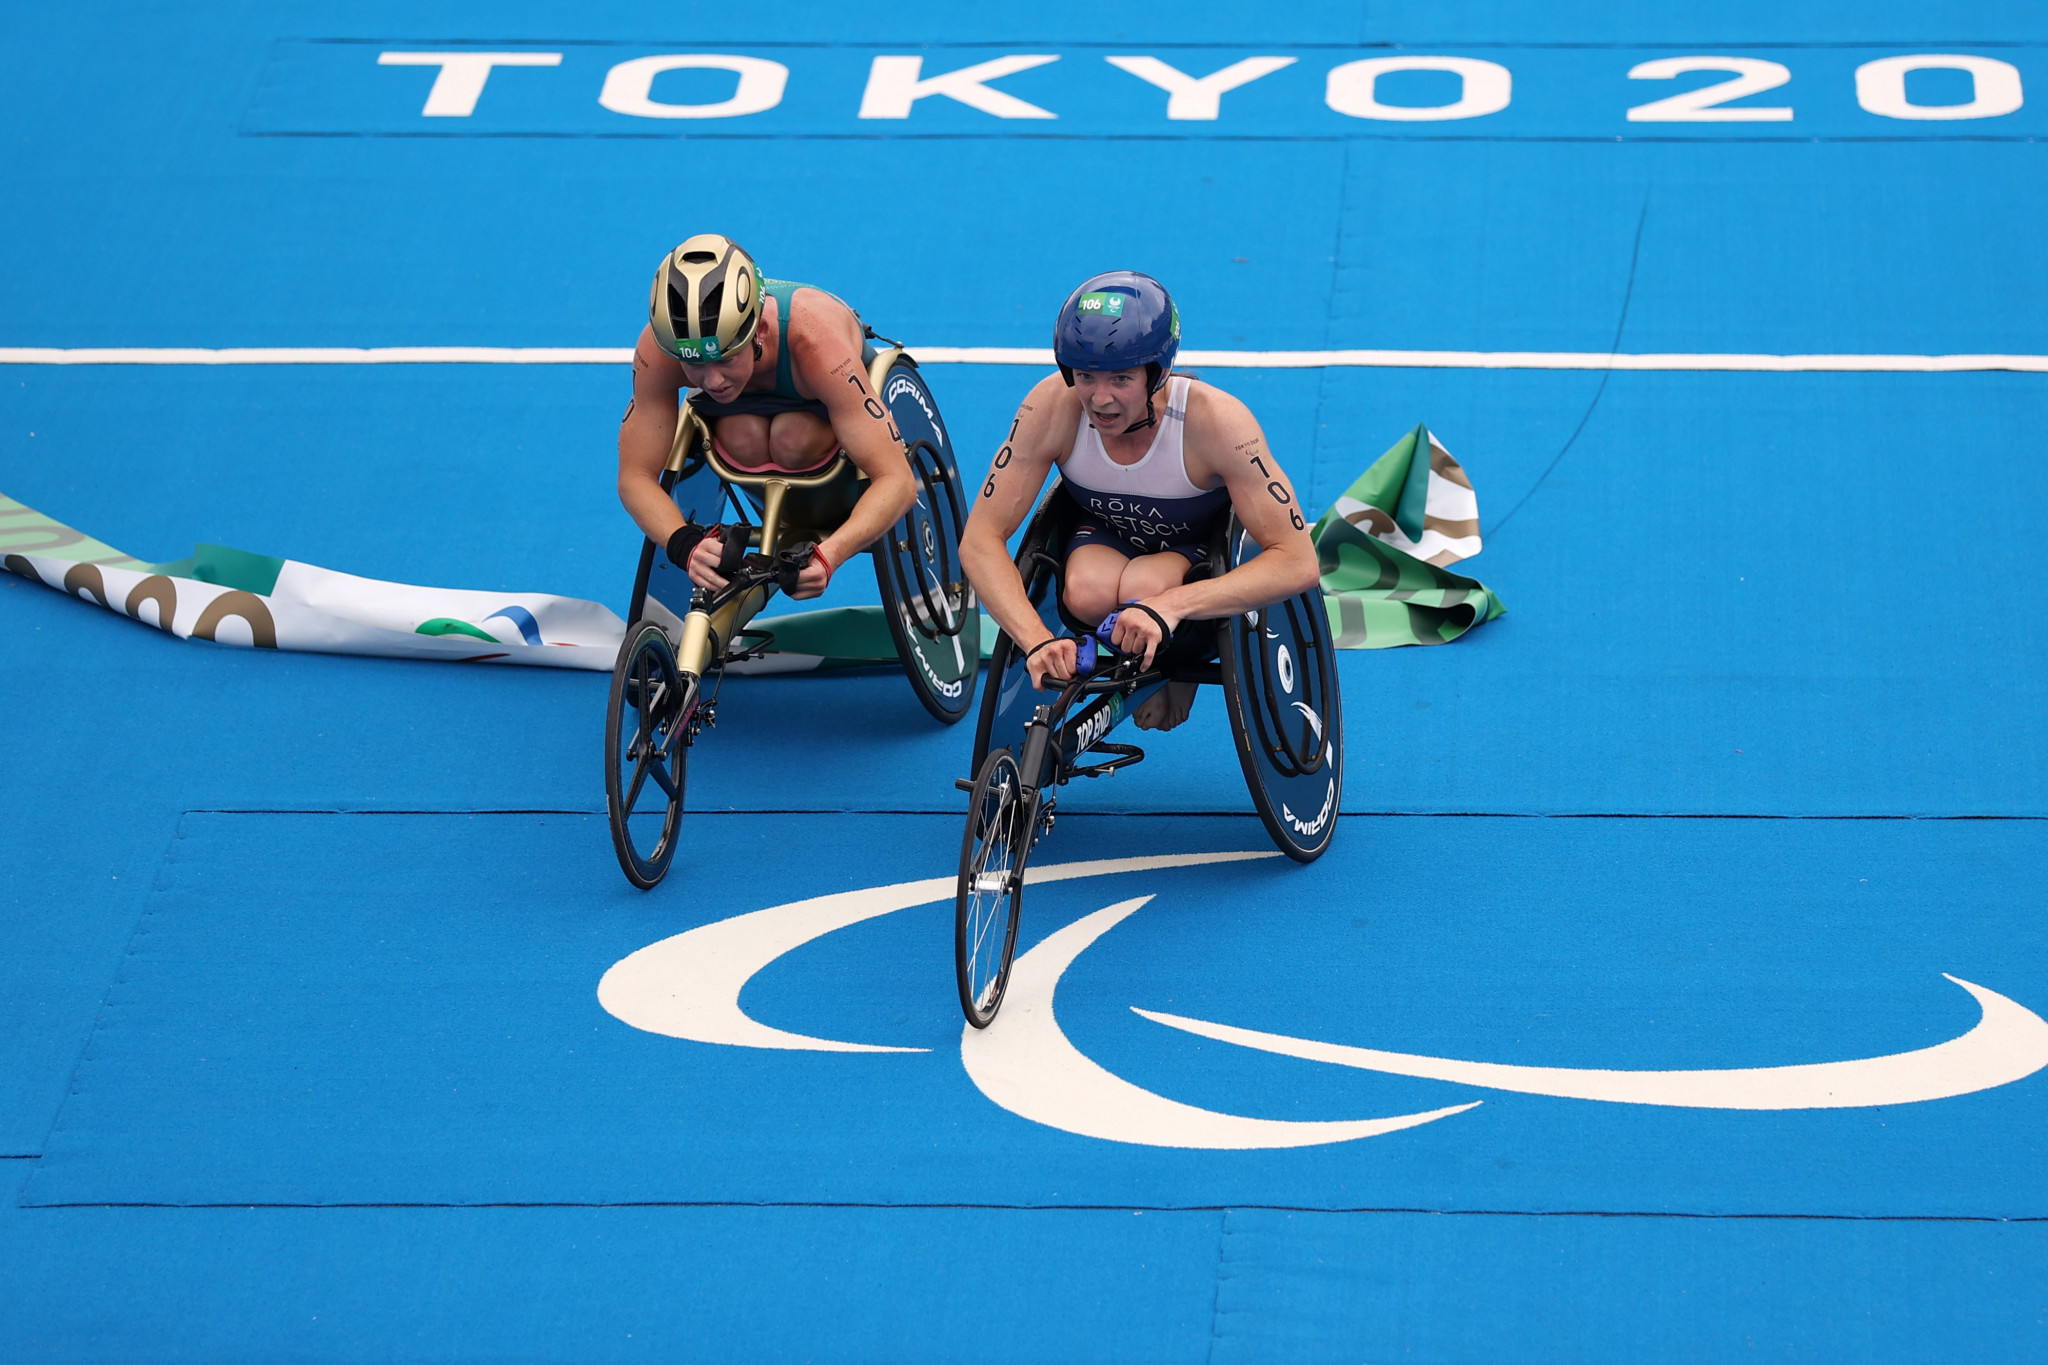 Gretsch adds Tokyo 2020 Paralympic triathlon gold to Pyeongchang 2018 success